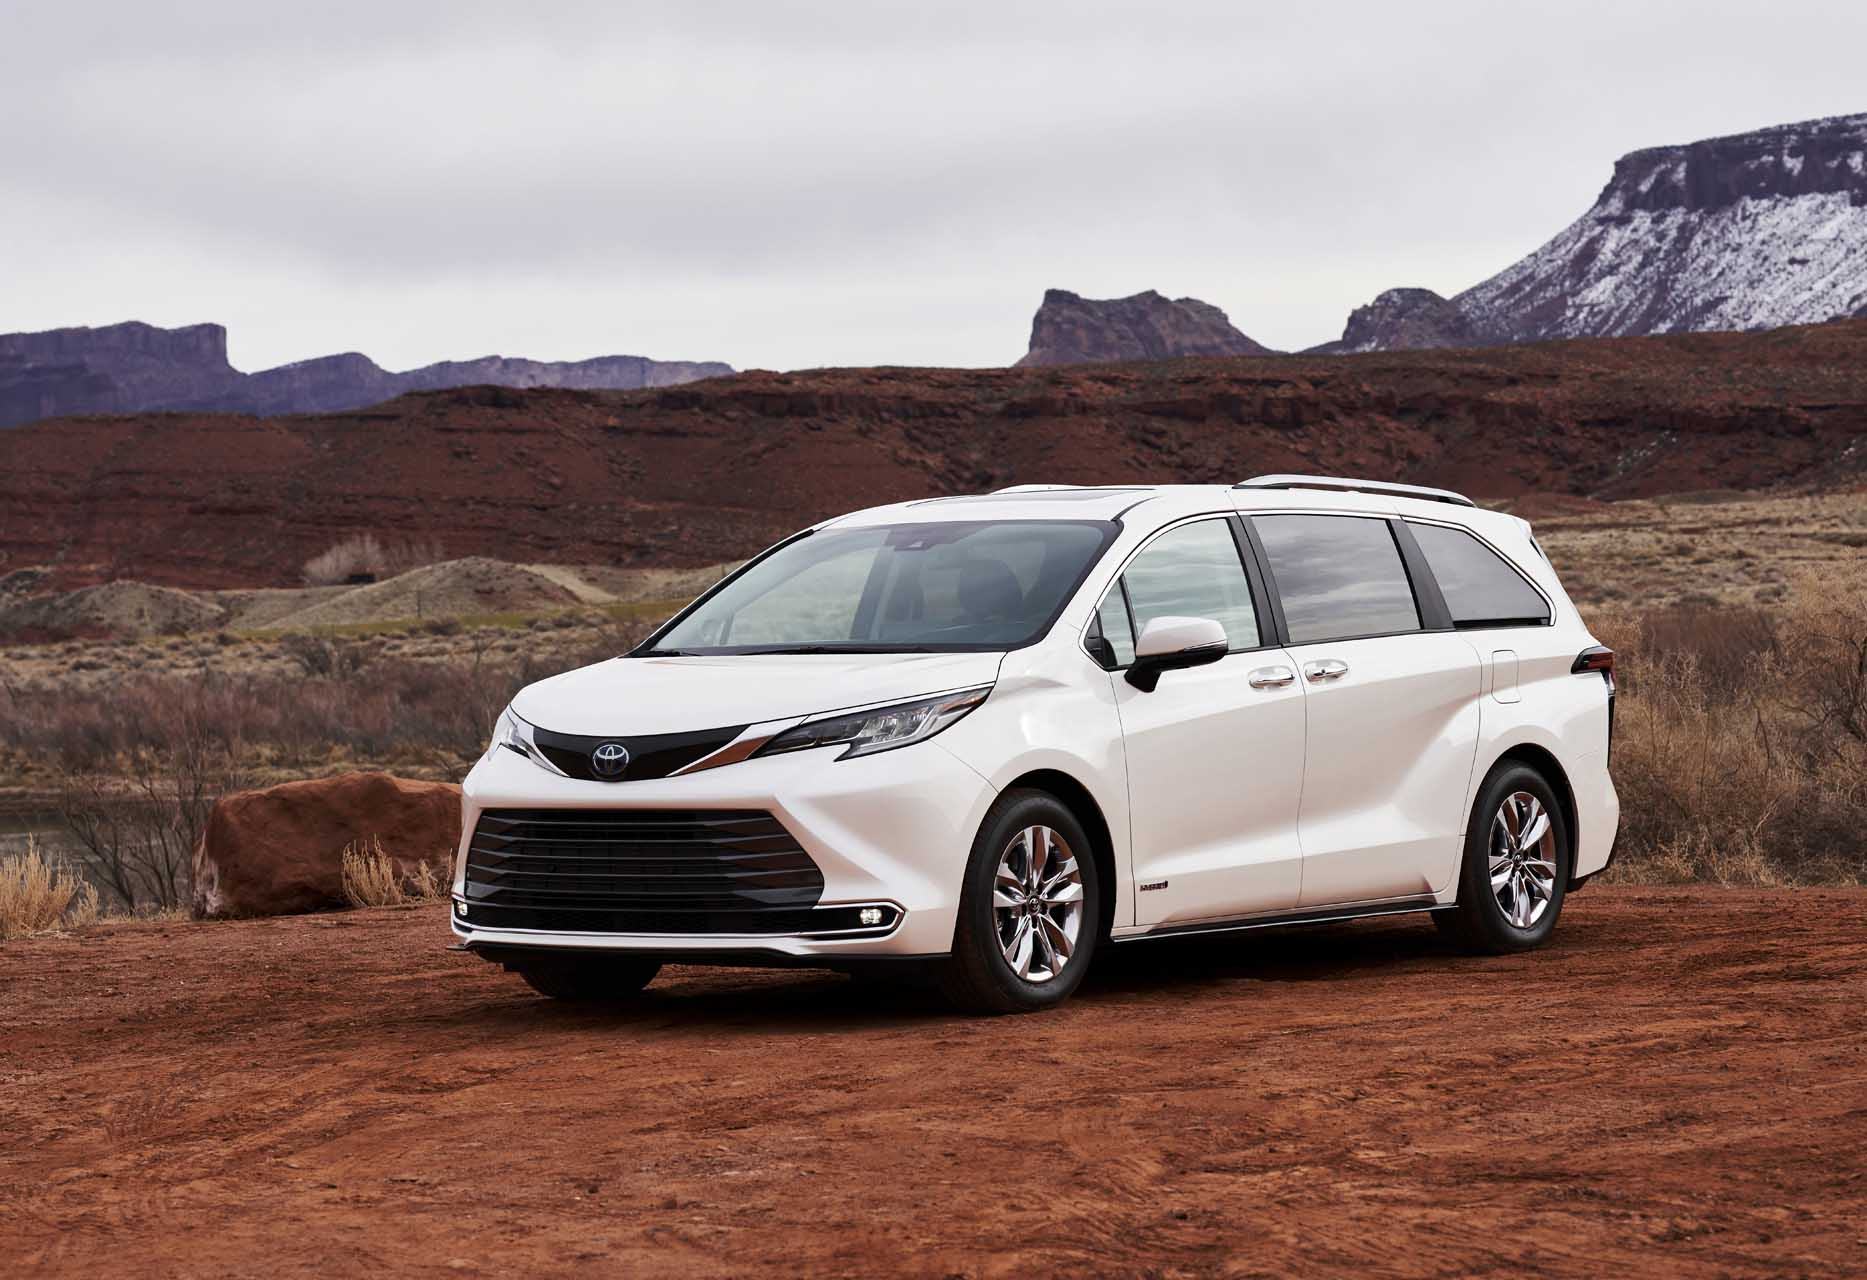 2021 Toyota Sienna Review, Ratings, Specs, Prices, and Photos